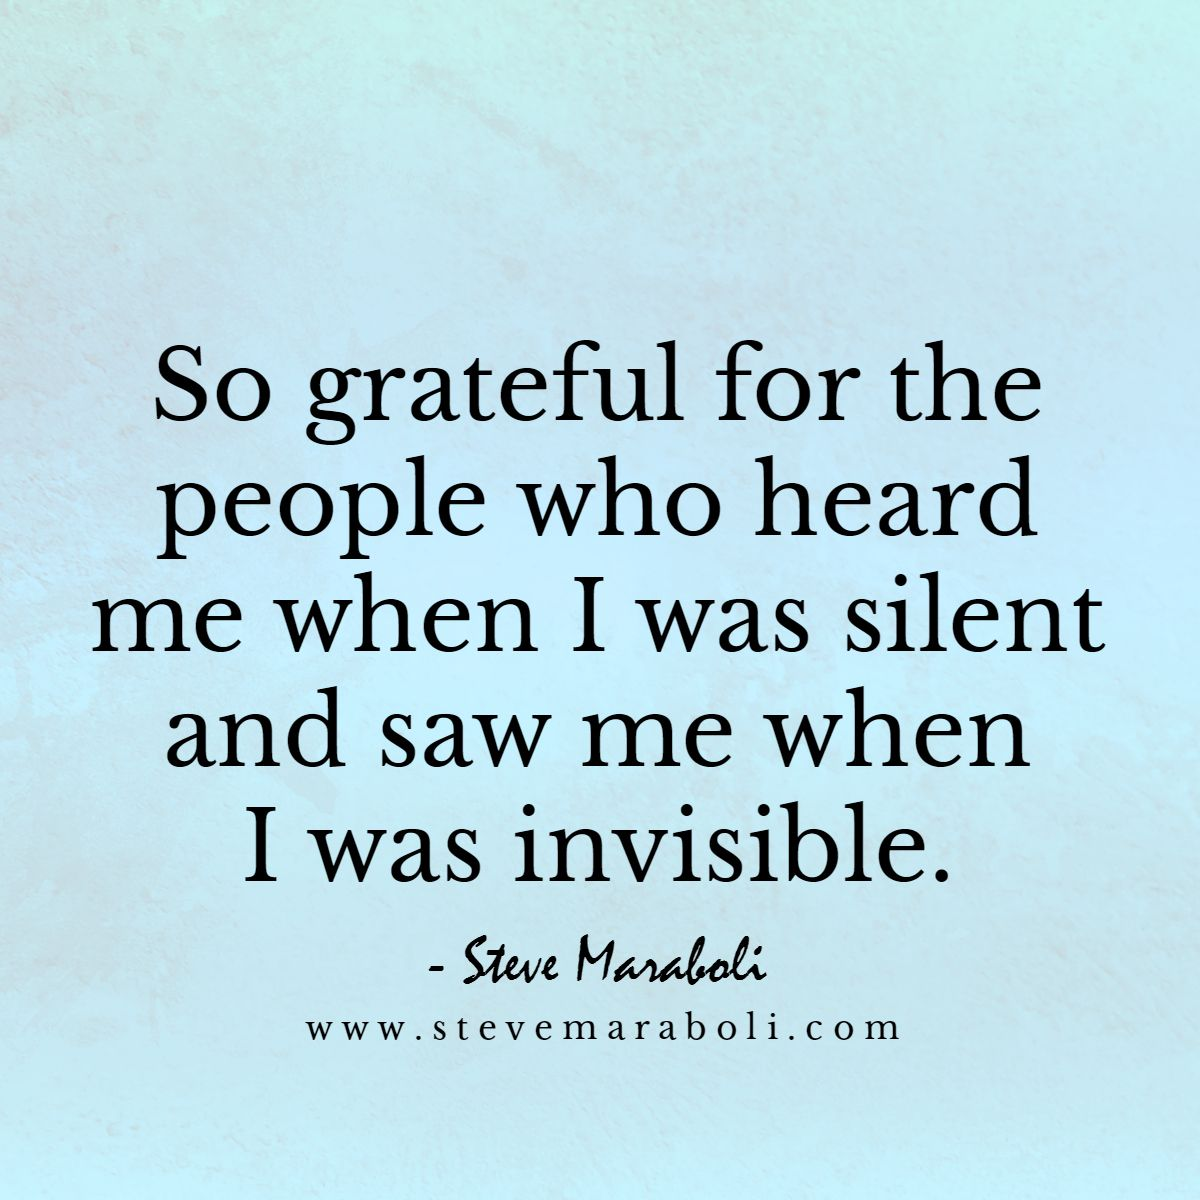 So grateful for the people who heard me when I was silent and saw me when I was invisible.  - Steve Maraboli